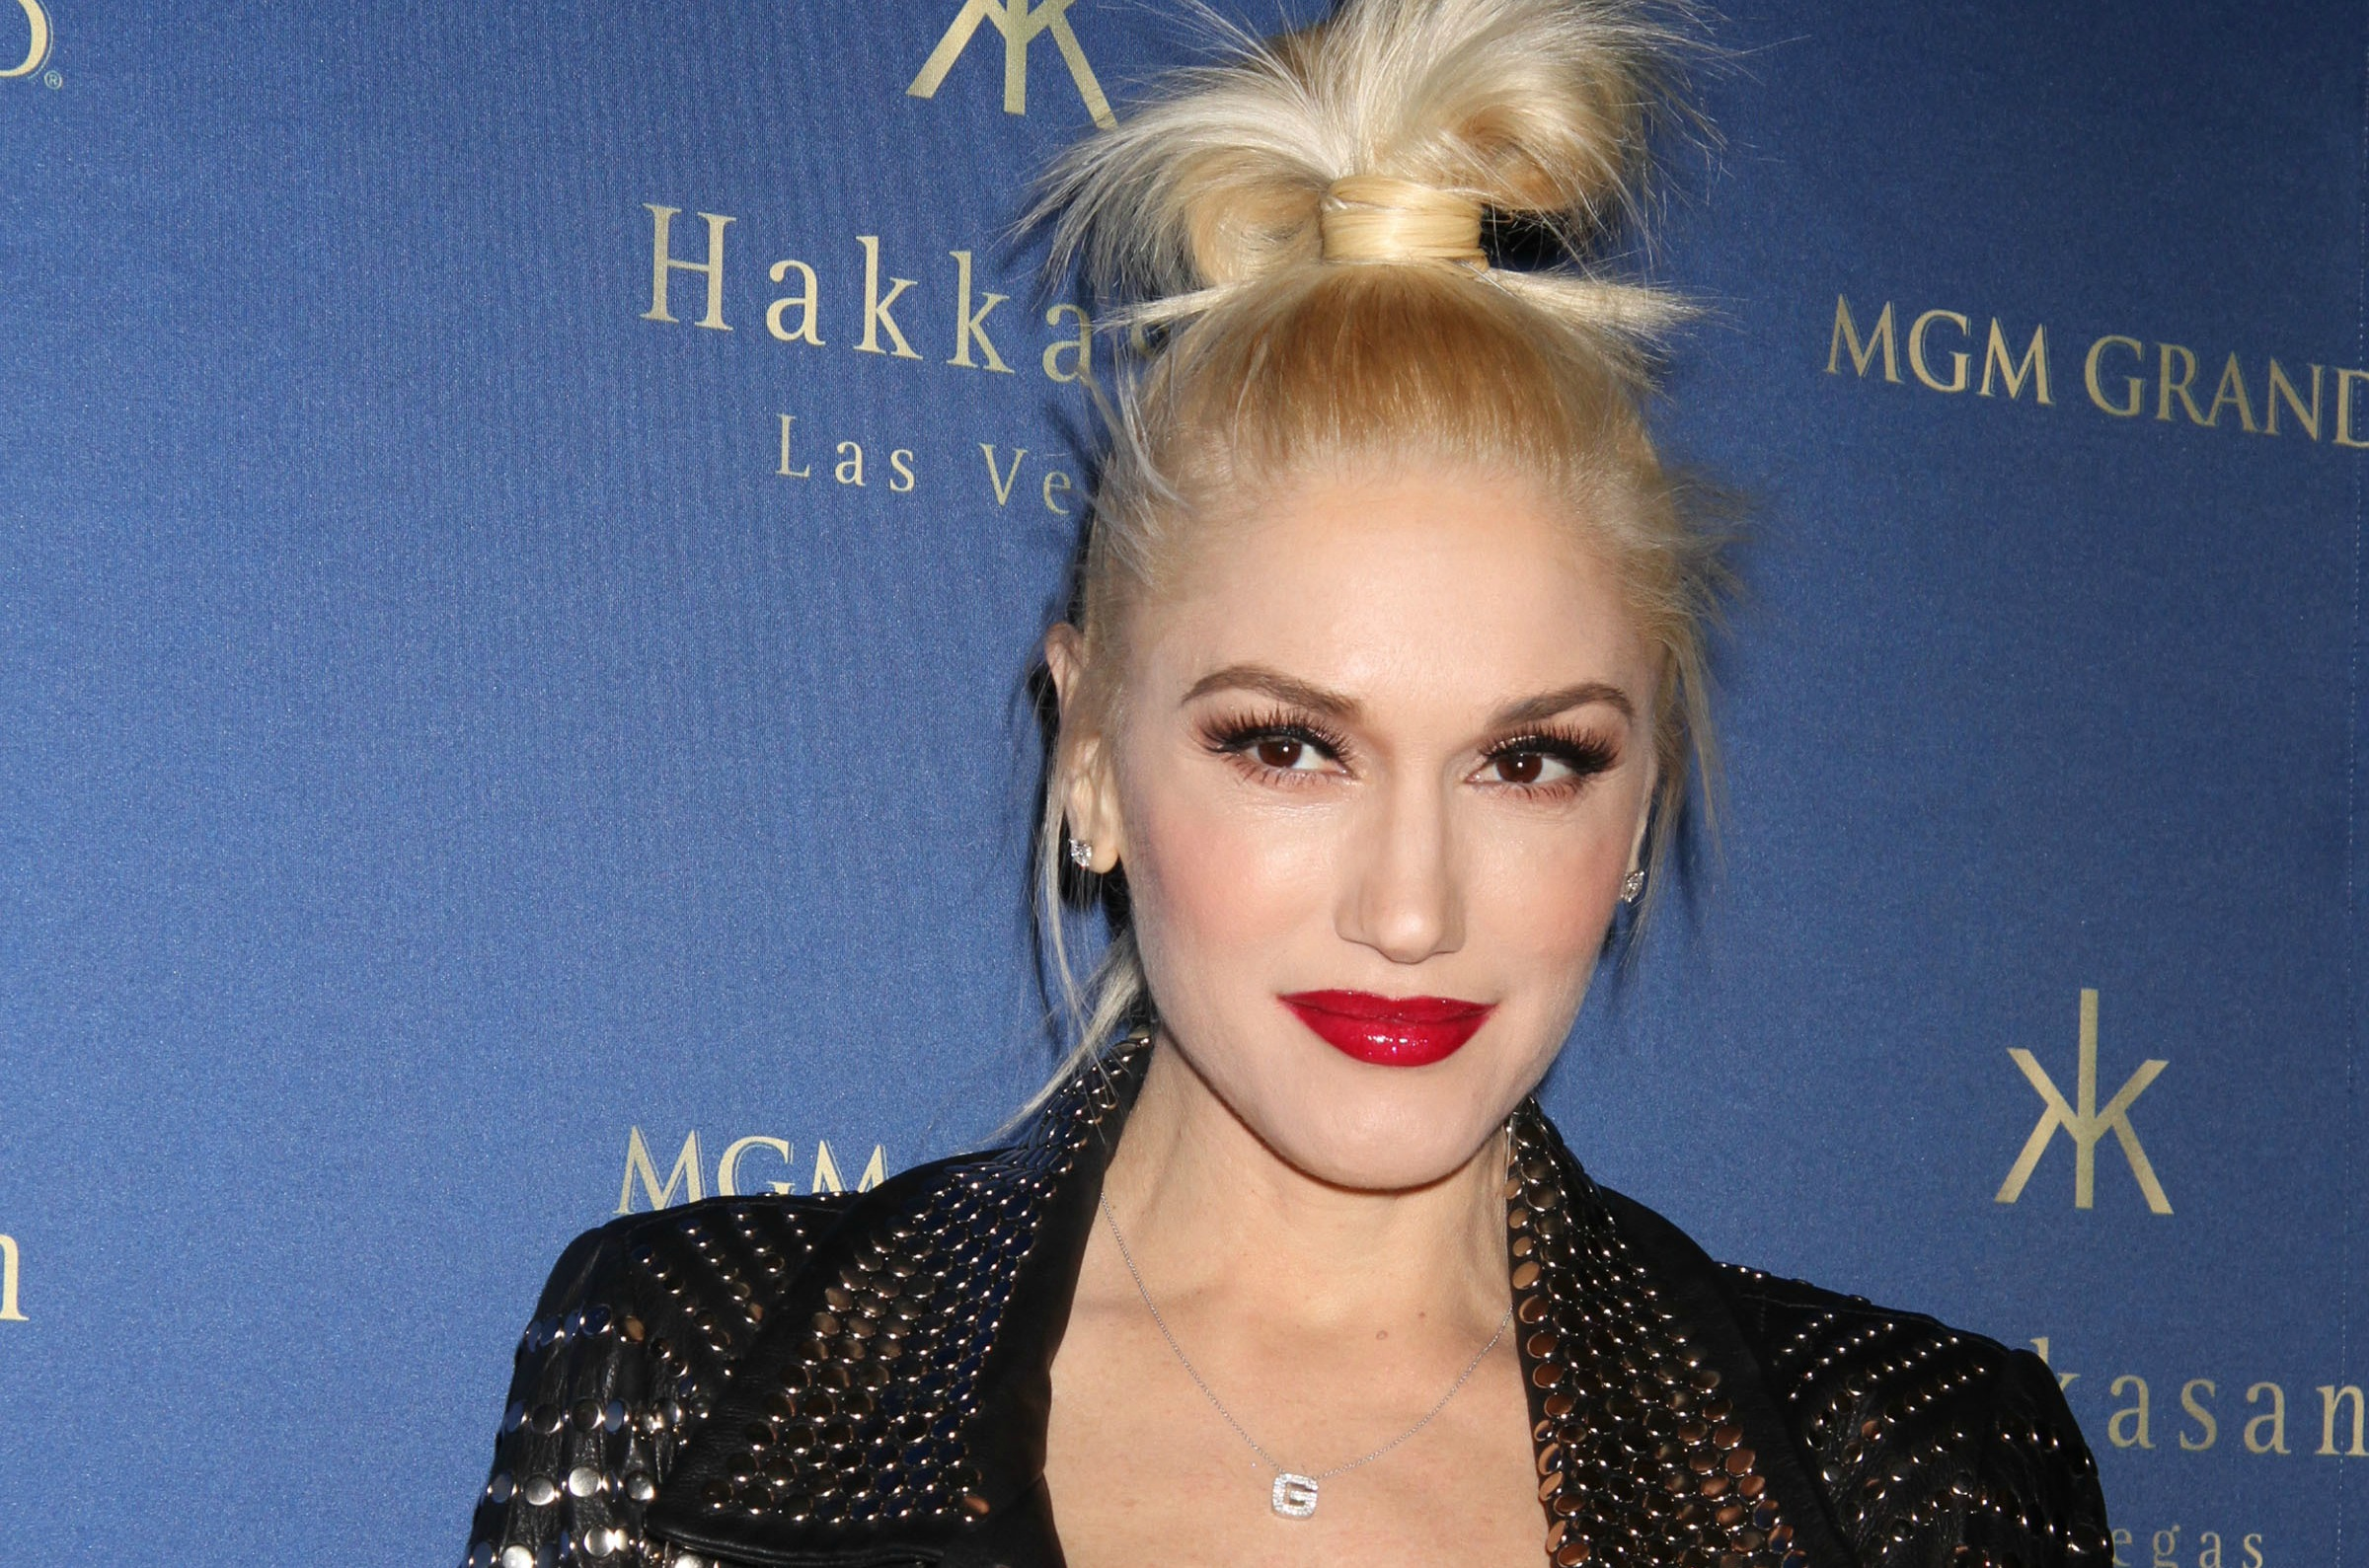 Gwen Stefani confirmed as The Voice judge for Season 7